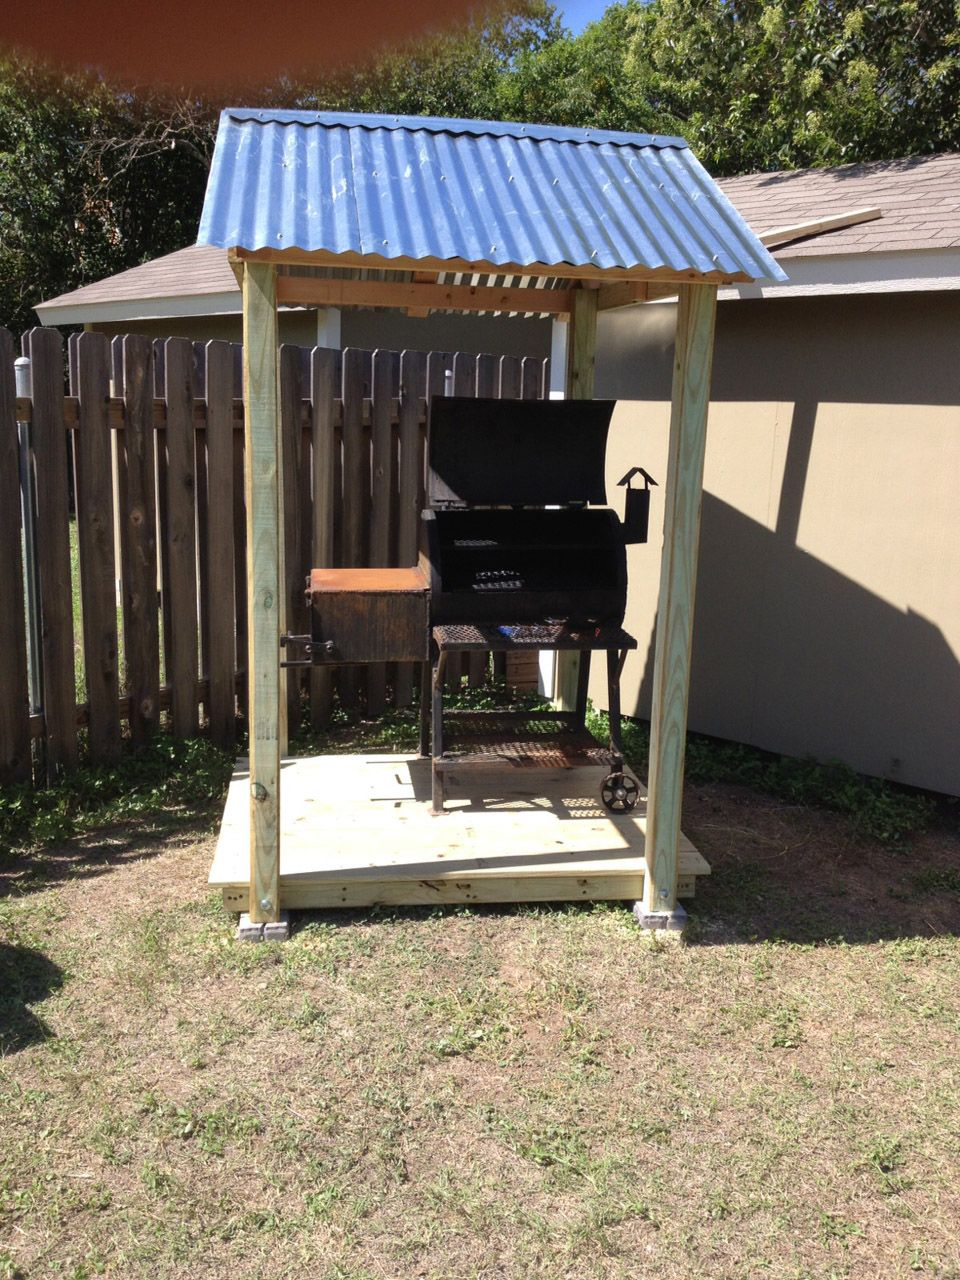 Check out this DIY bbq pit cover made by Eric Gentry in Manchaca TX. & Check out this DIY bbq pit cover made by Eric Gentry in Manchaca ...